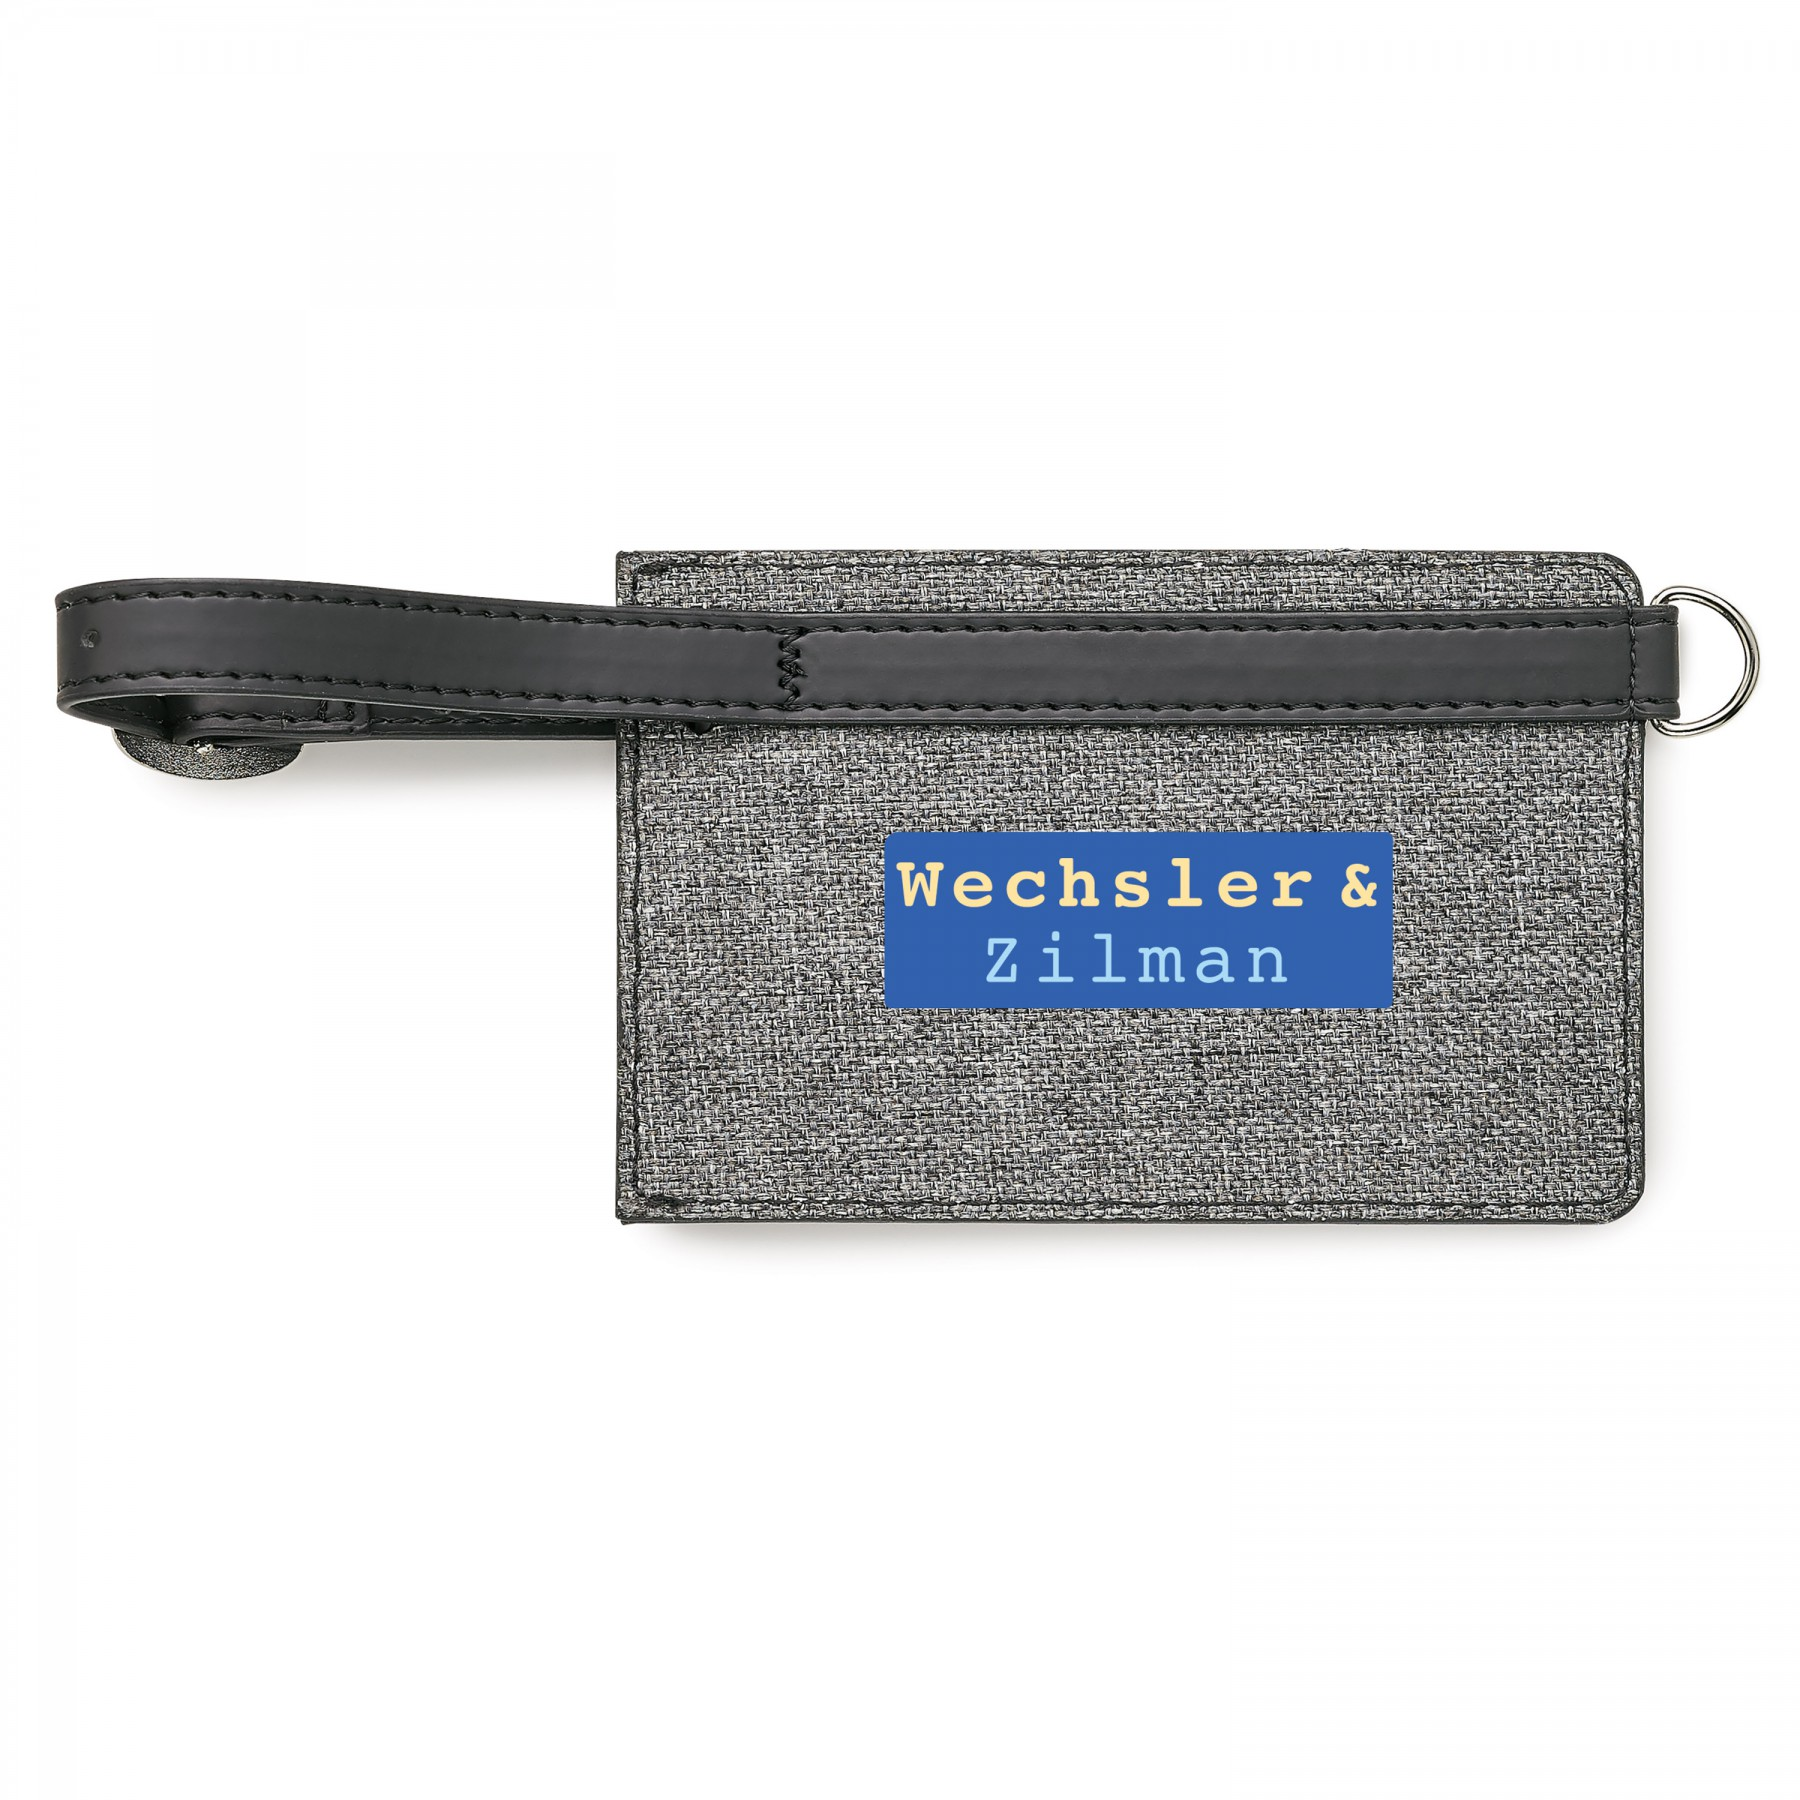 Nomad Luggage Tag, G530, Full Colour Imprint